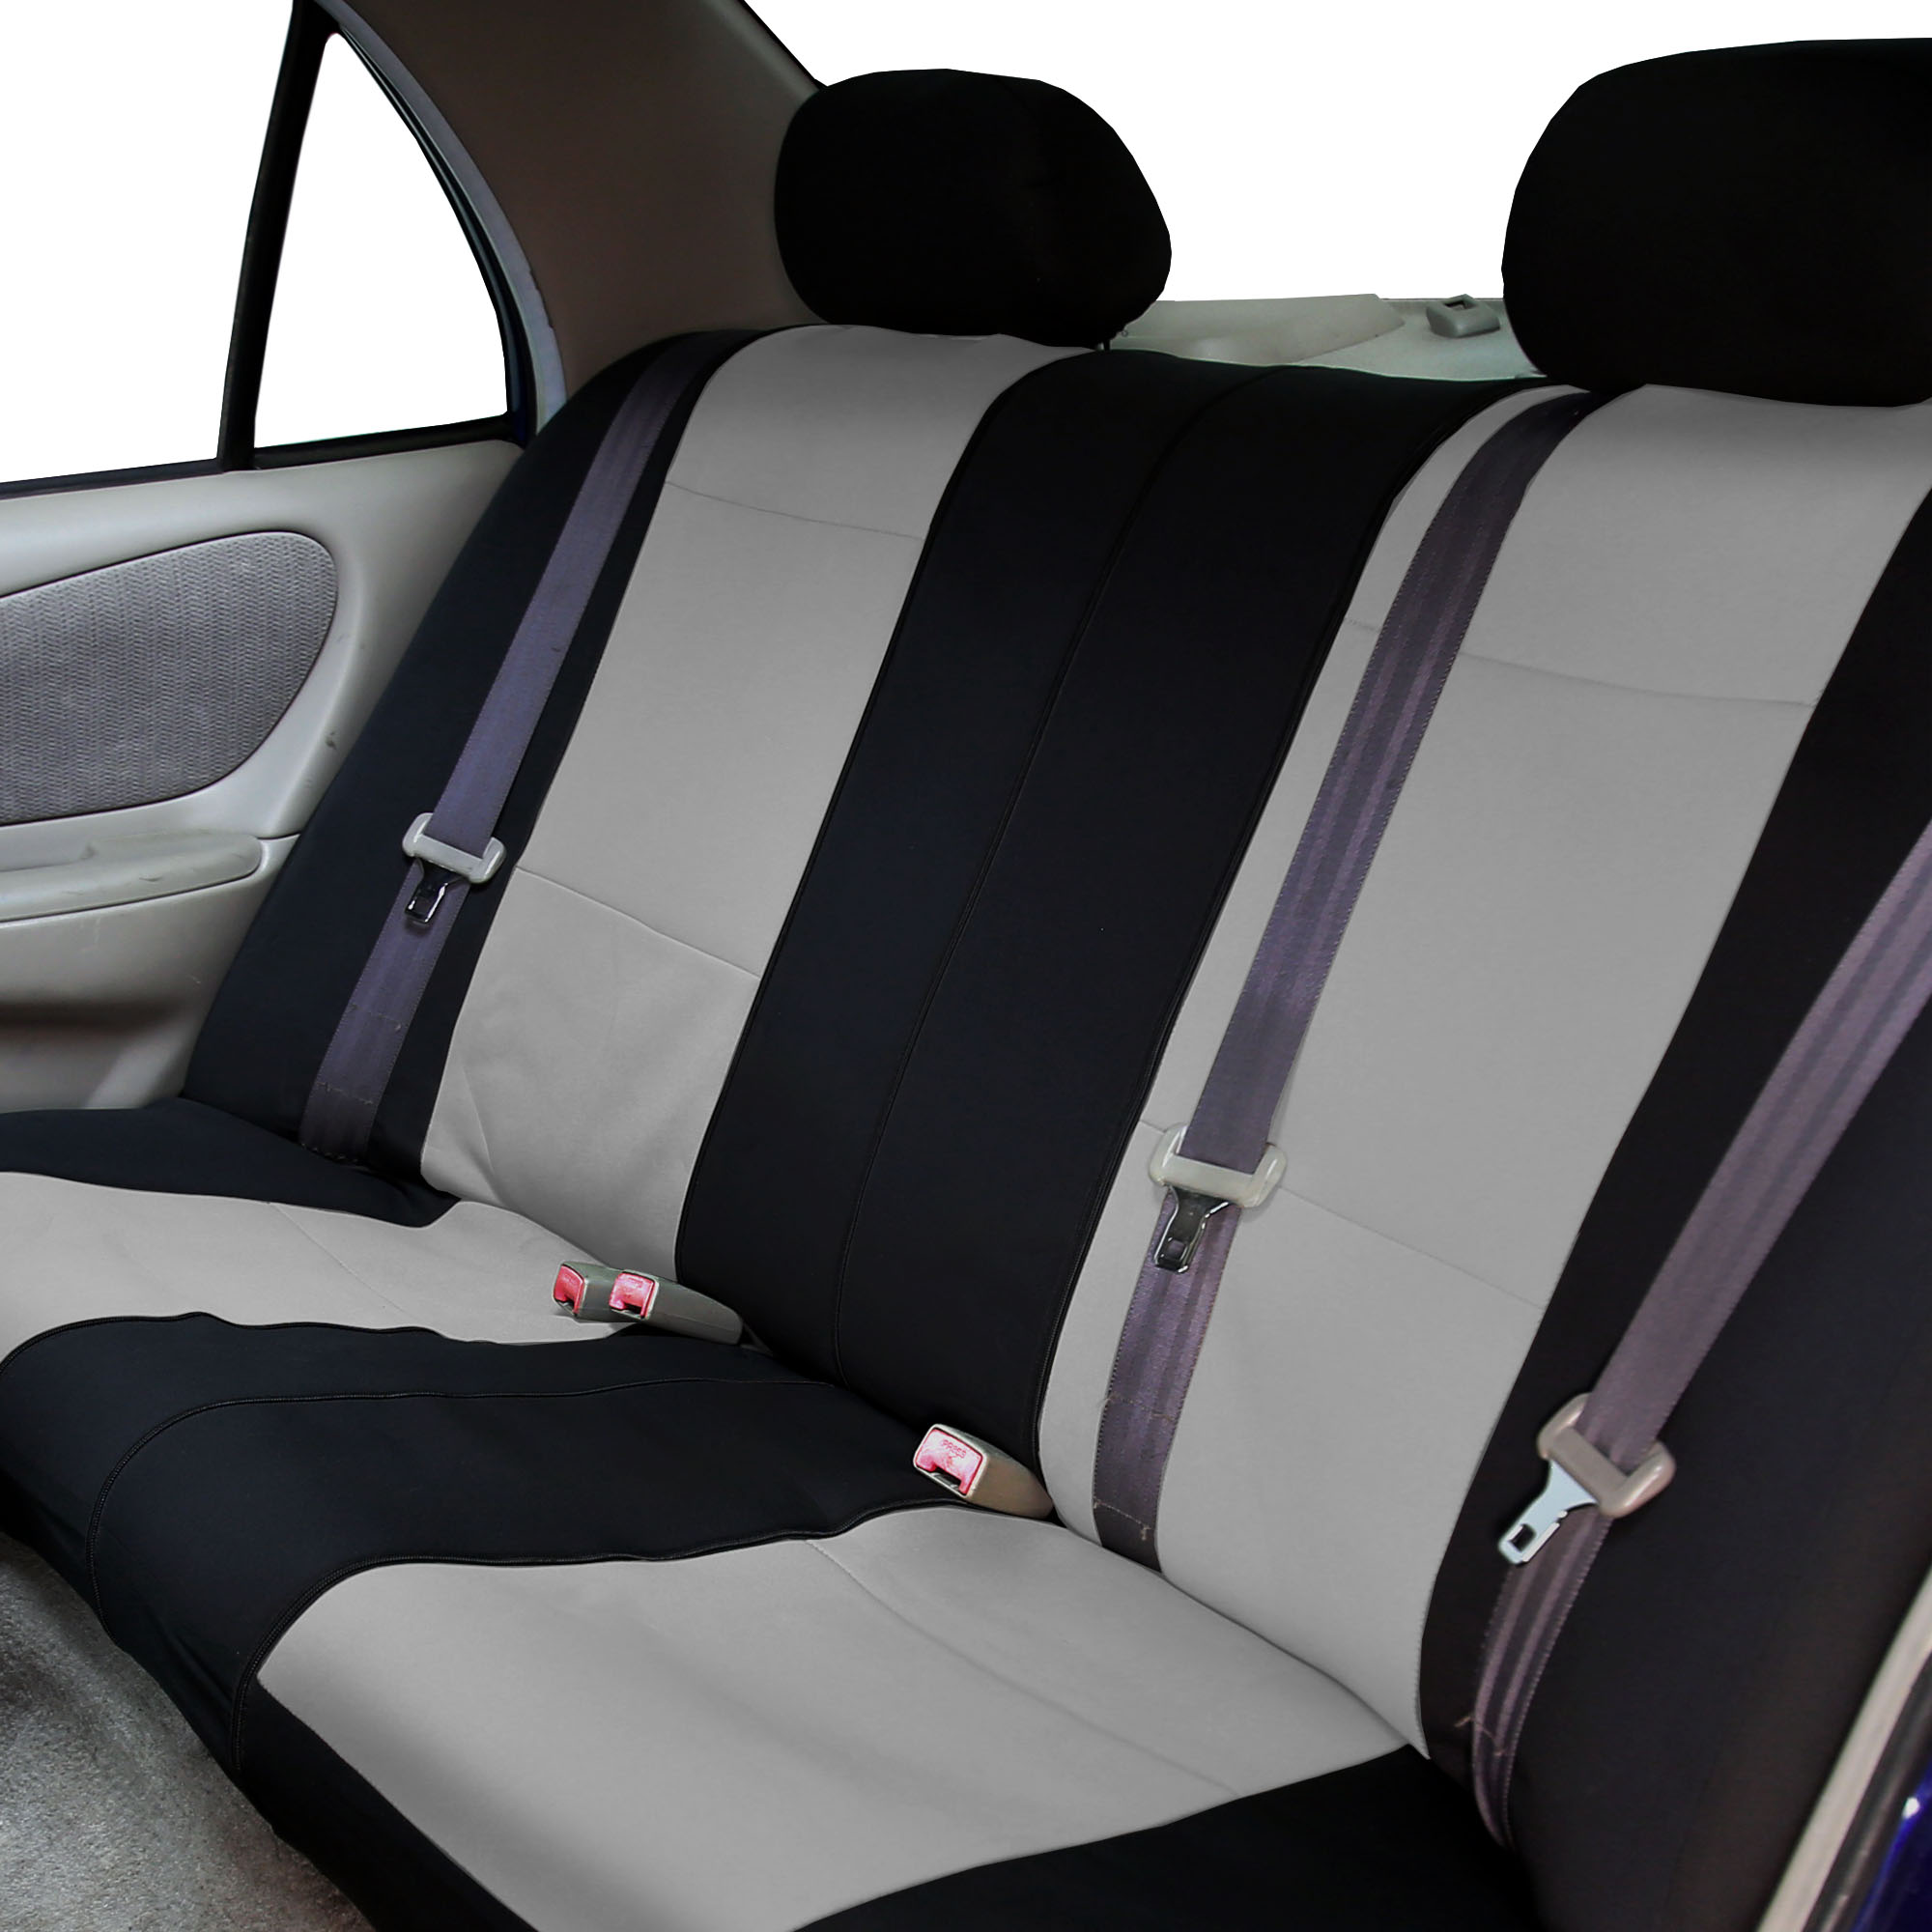 Car-Seat-Cover-Neoprene-Waterproof-Pet-Proof-Full-Set-Cover-With-Dash-Pad thumbnail 42